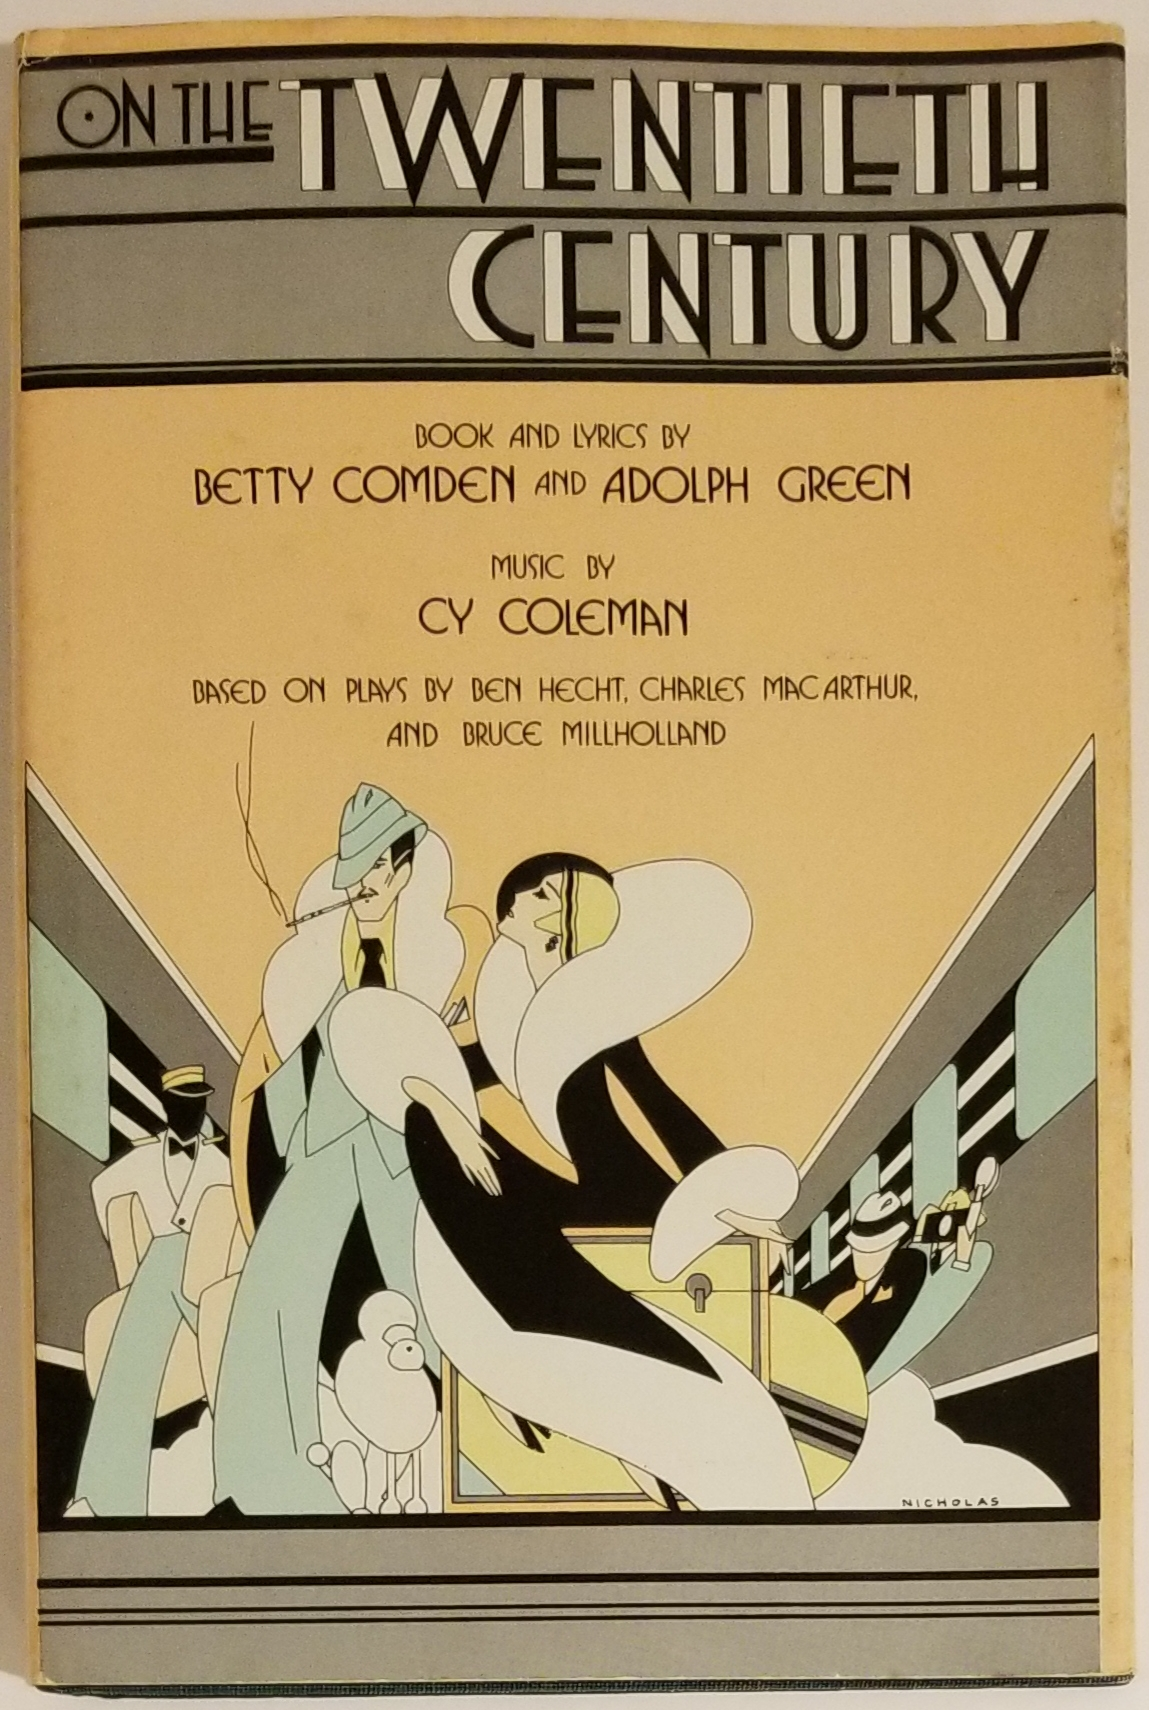 ON THE TWENTIETH CENTURY. Book, lyrics, Betty Comden, Adolph. Coleman Green, Cy, Music.